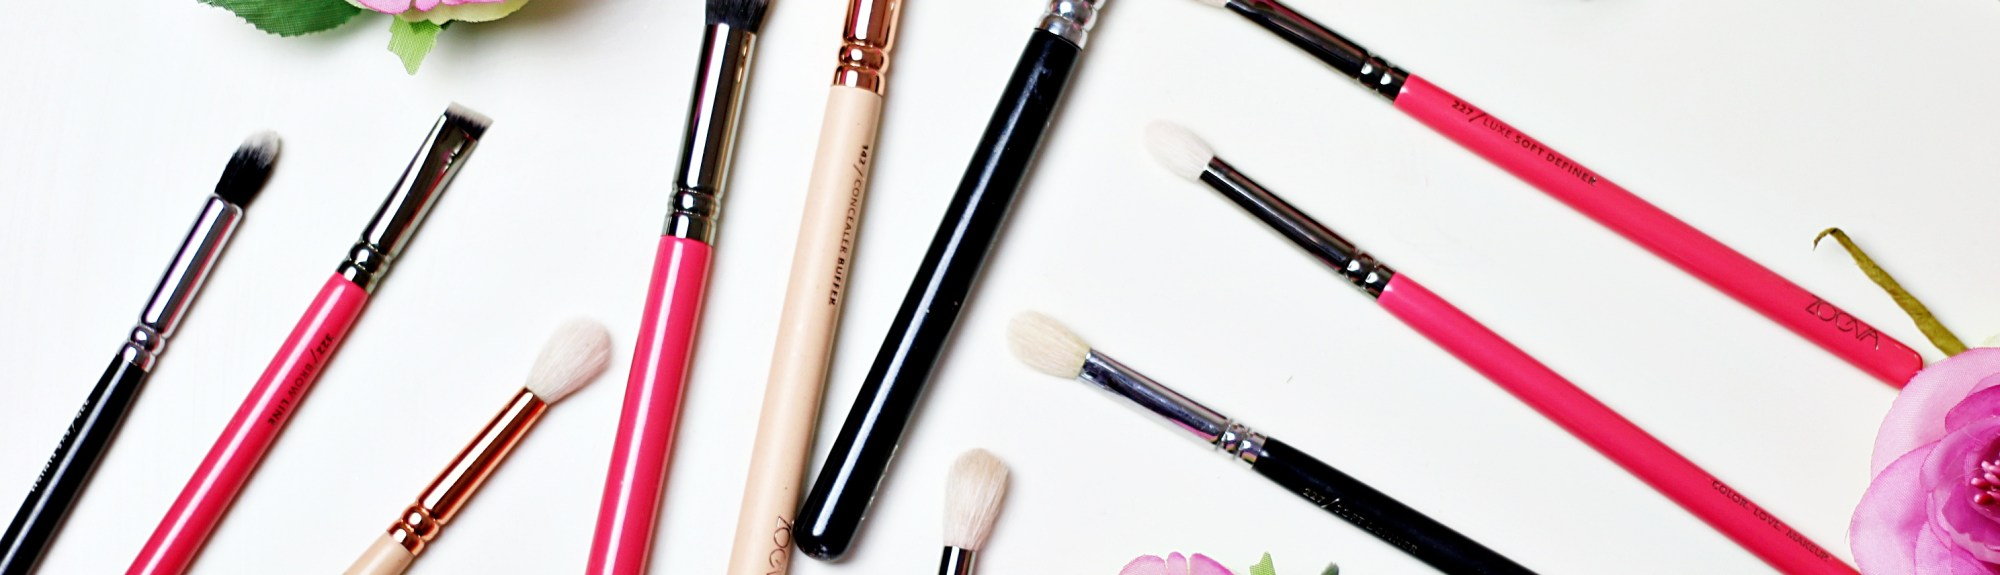 Zoeva Brushes: Top Picks & Skip It's